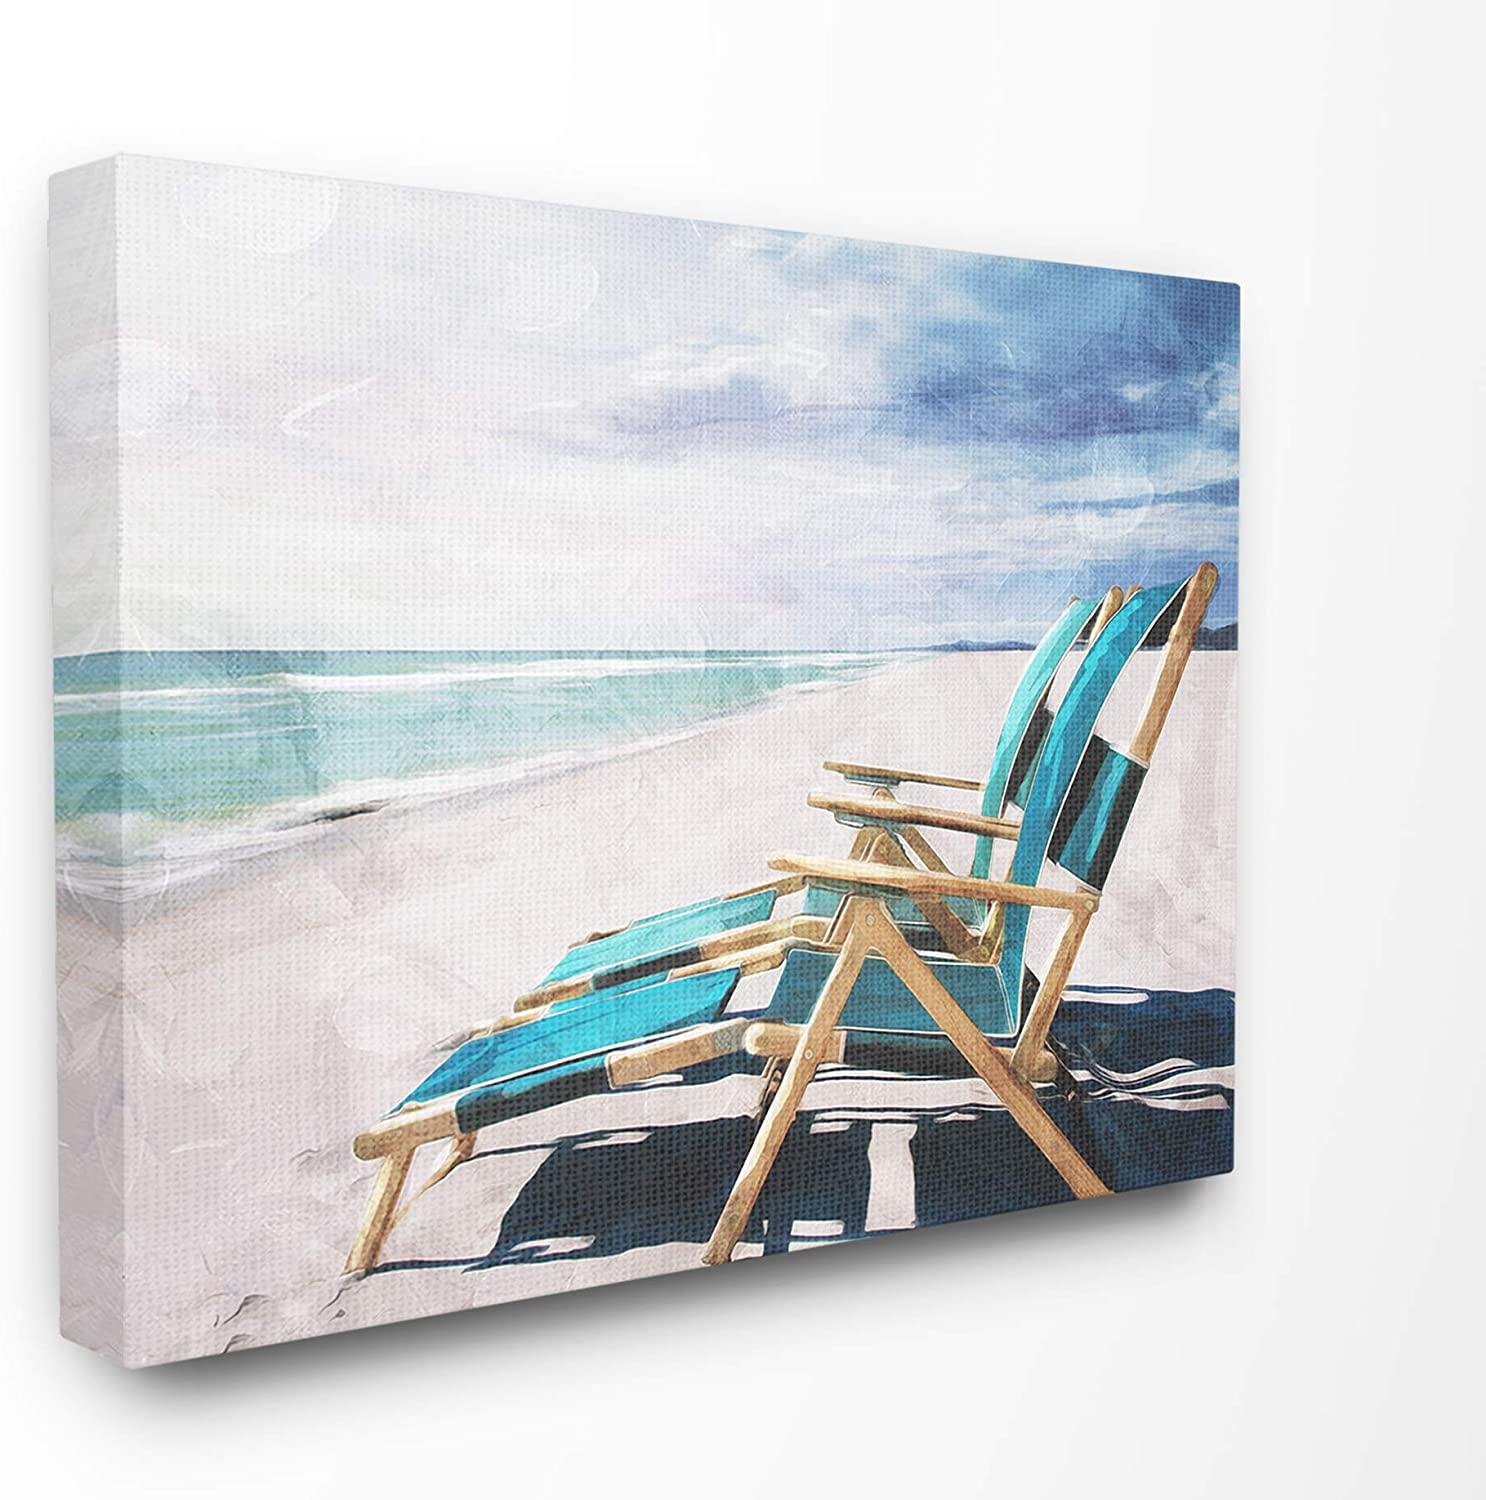 Stupell Industries Set of Teal Blue Chairs on The Beach Canvas Wall Art, 24 x 30, Multi-Color